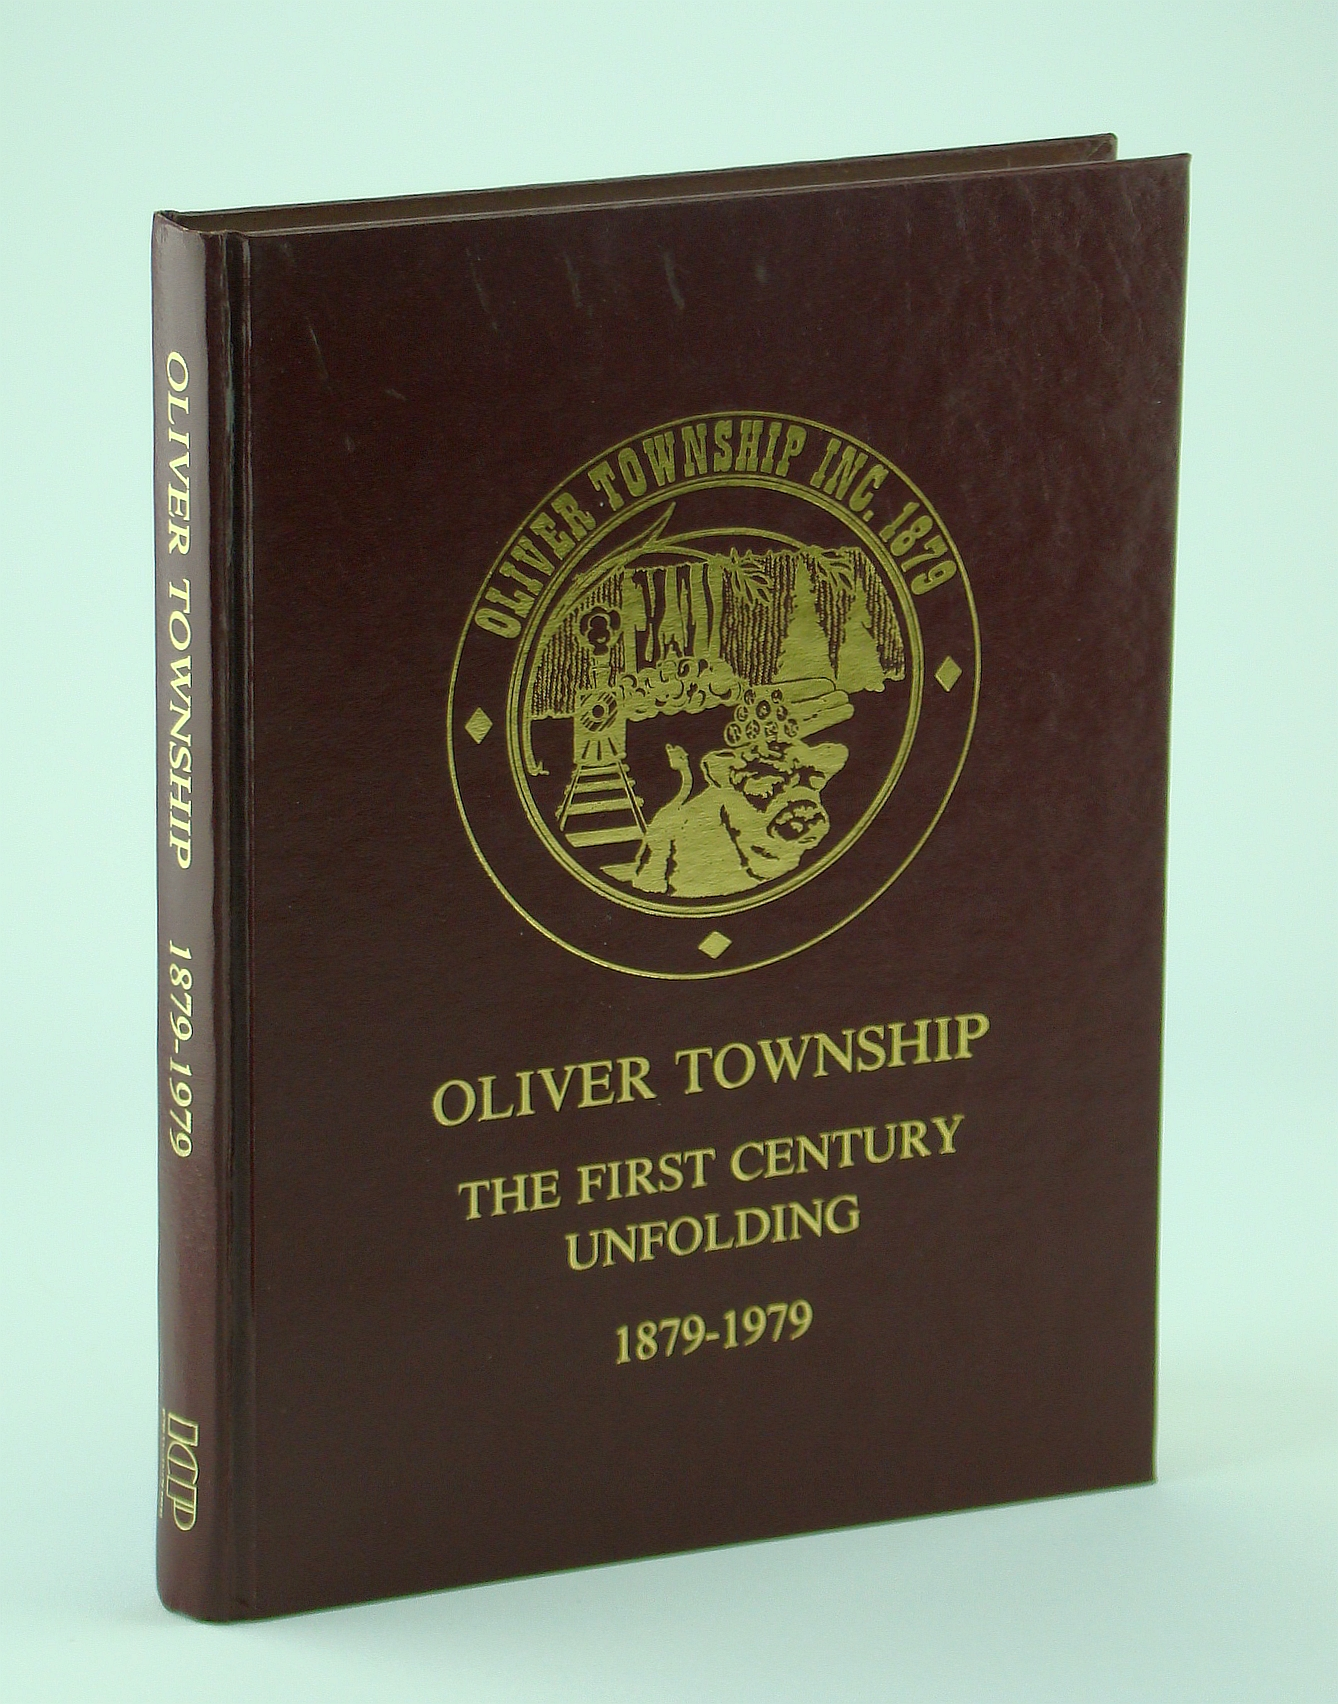 Image for Oliver Township - The First Century Unfolding, 1879-1979 - Thunder Bay (Ontario) District History